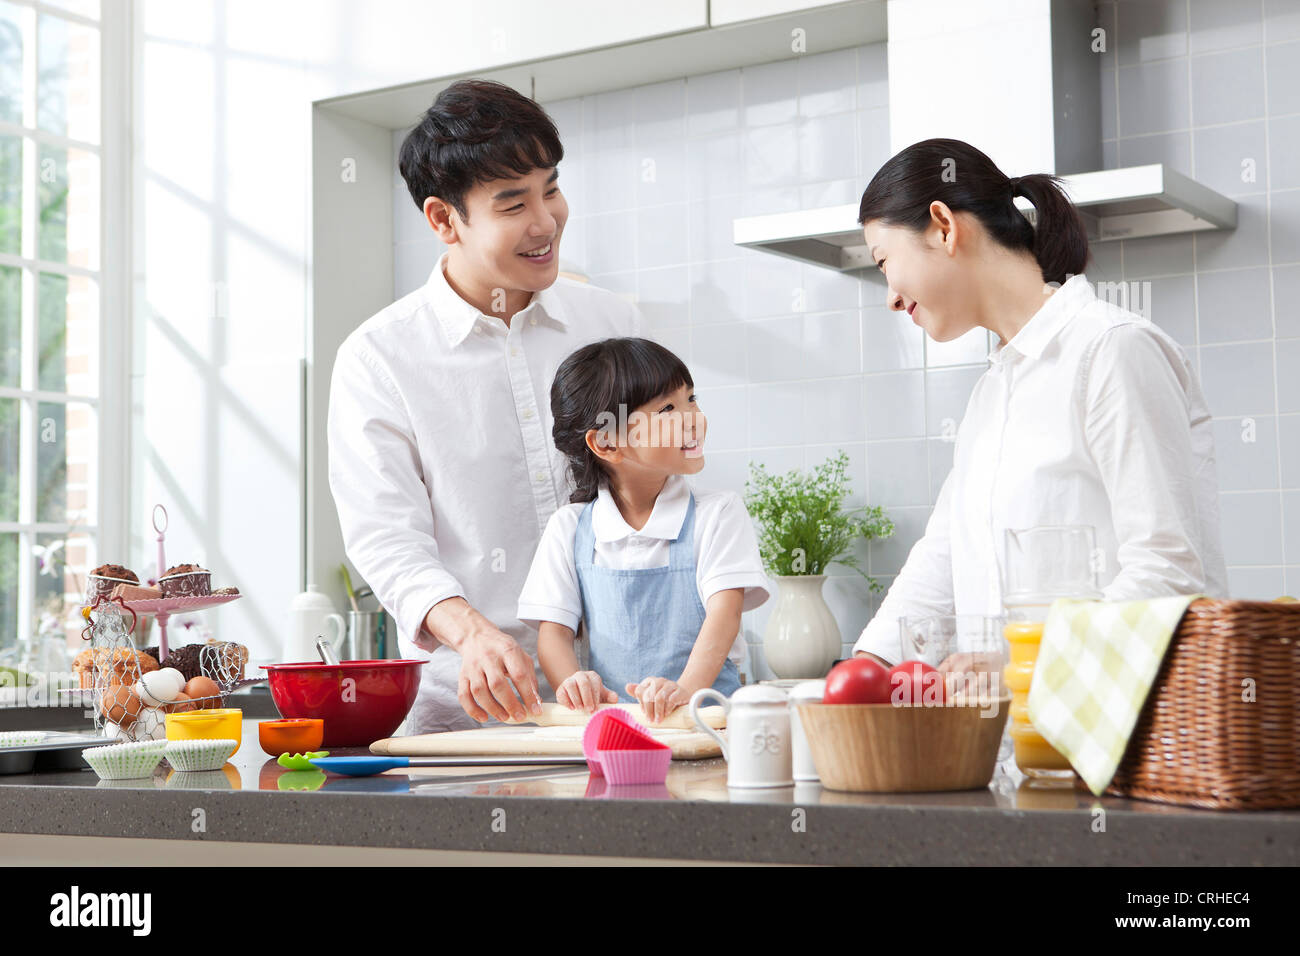 Happy family cooking in the kitchen Stock Photo: 48942324 - Alamy